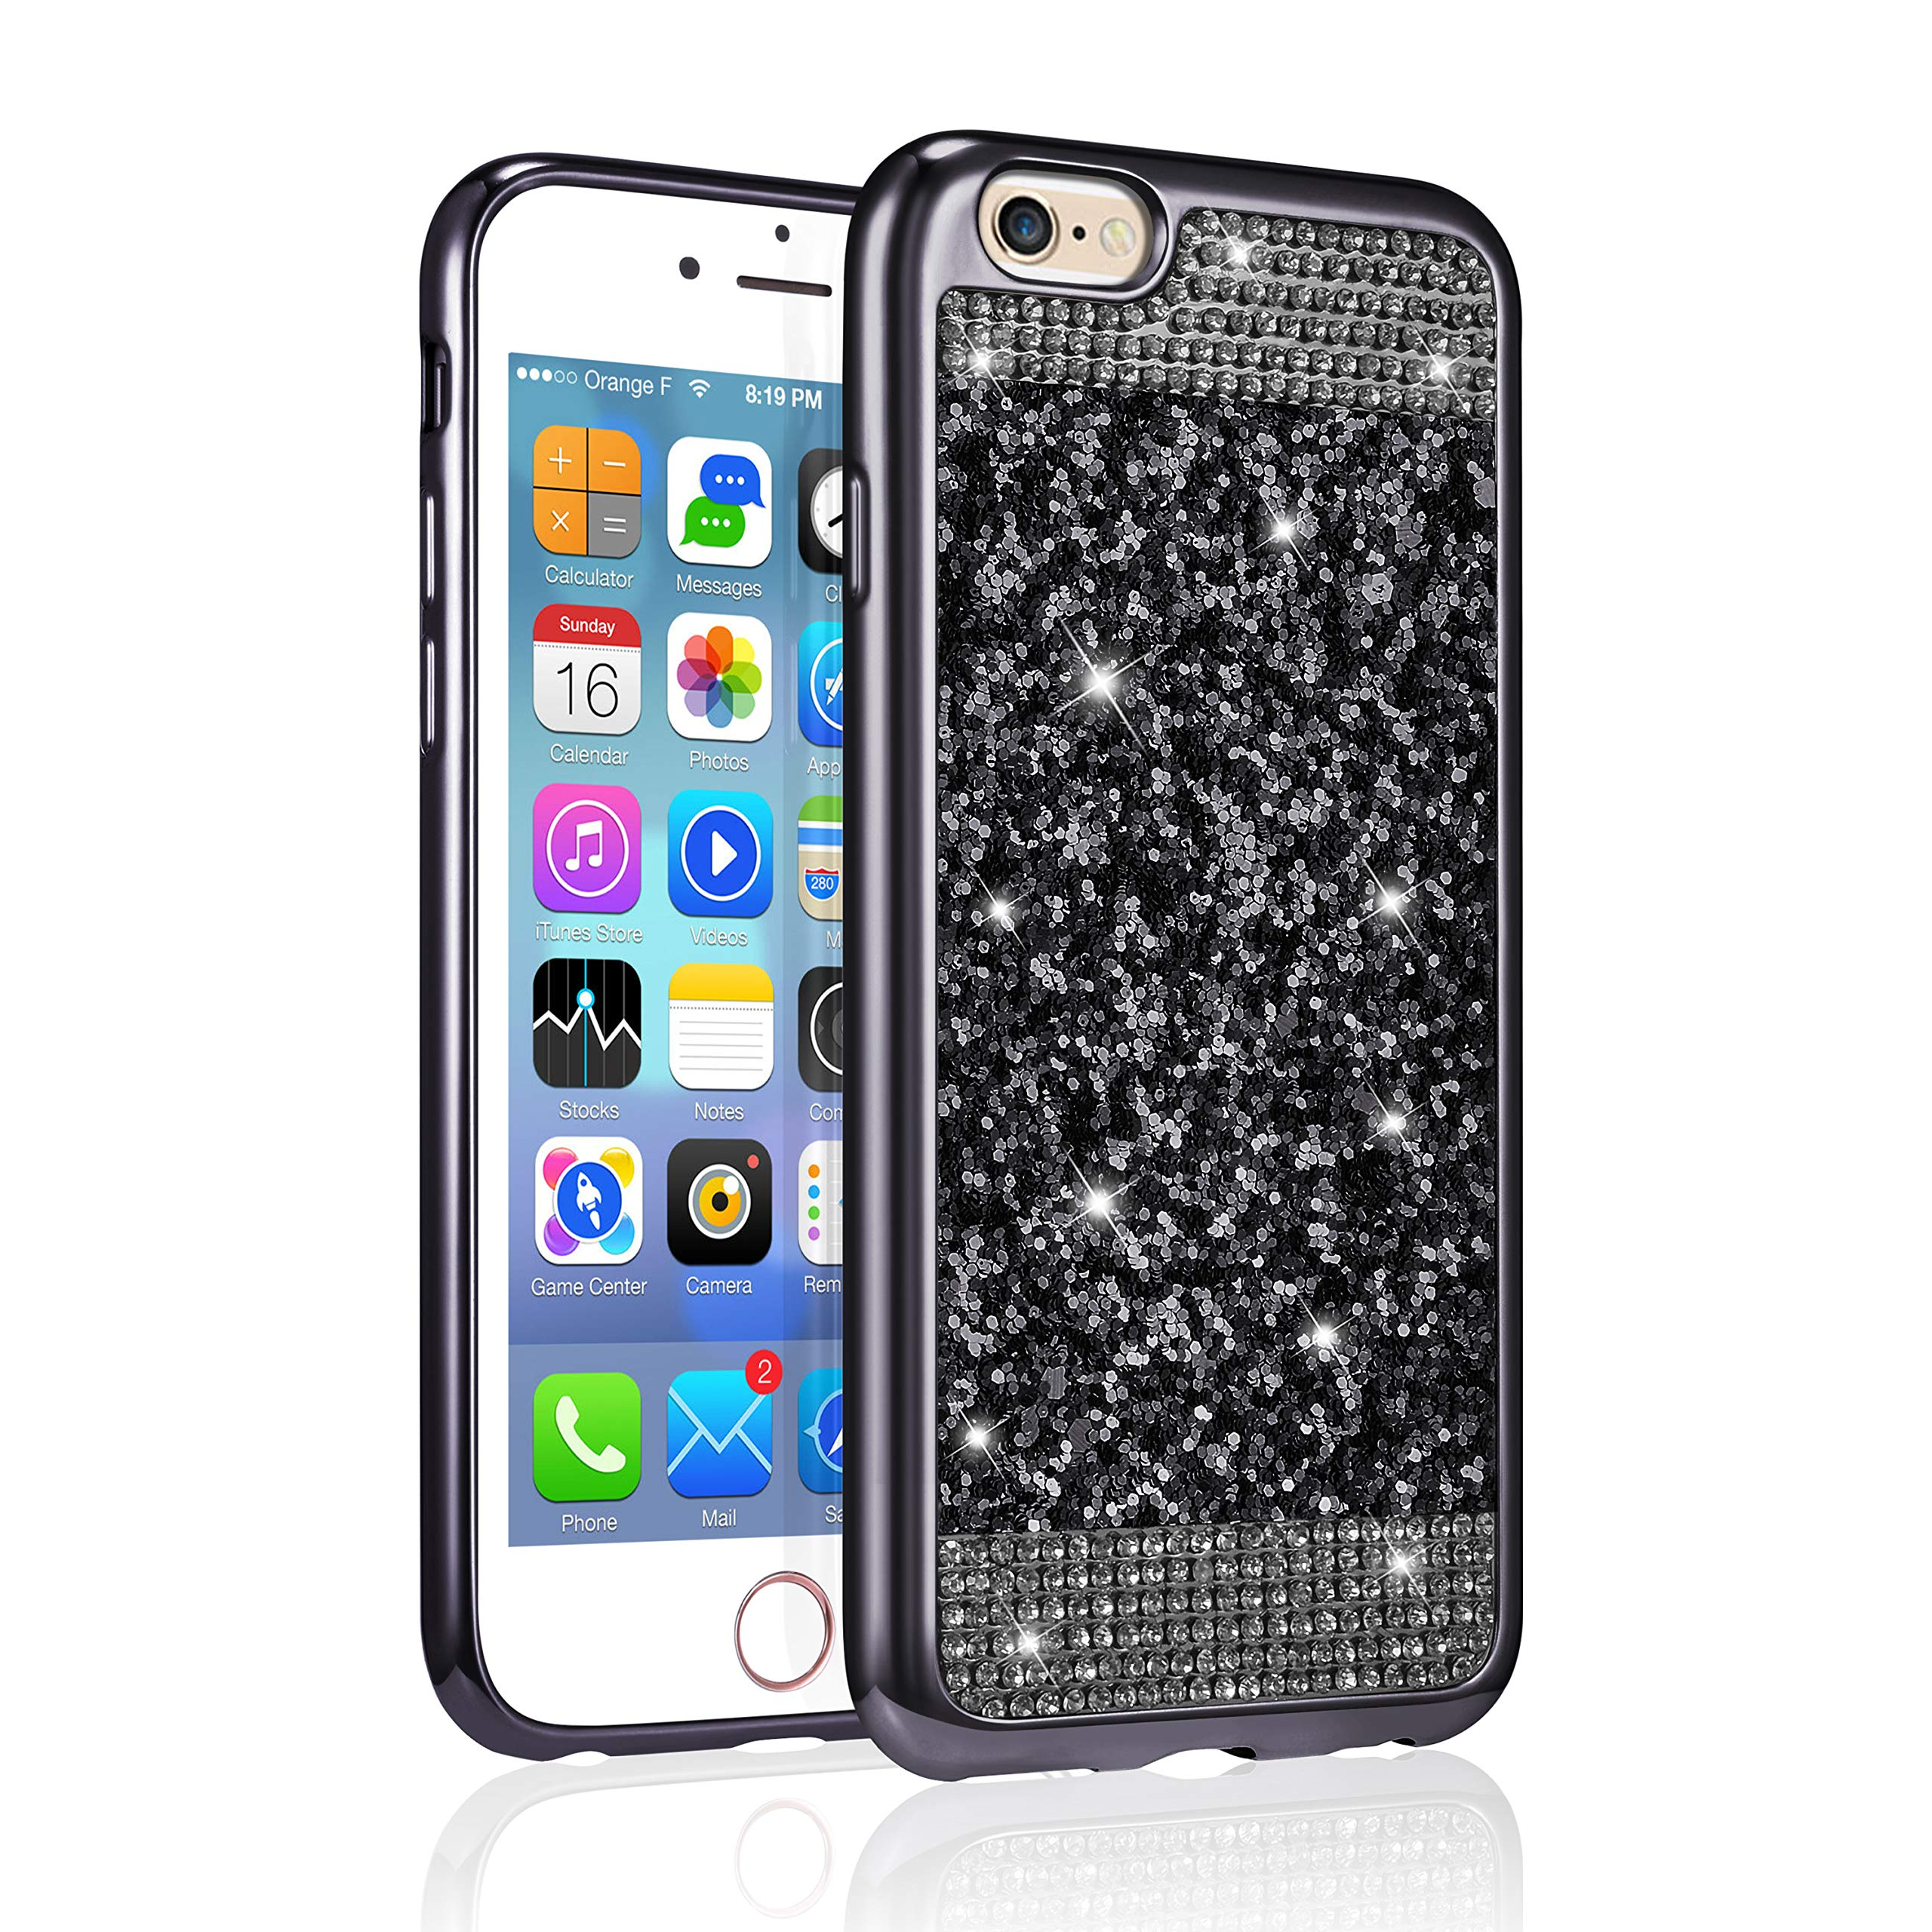 ZCDAYE Case for iPhone 5 5S SE,Bling Glitter [Crystal Rhinestone Diamond] Soft TPU Rubber Silicone [Electroplating Edge] Shockproof Protective Back Case for iPhone 5/5S/SE - Black